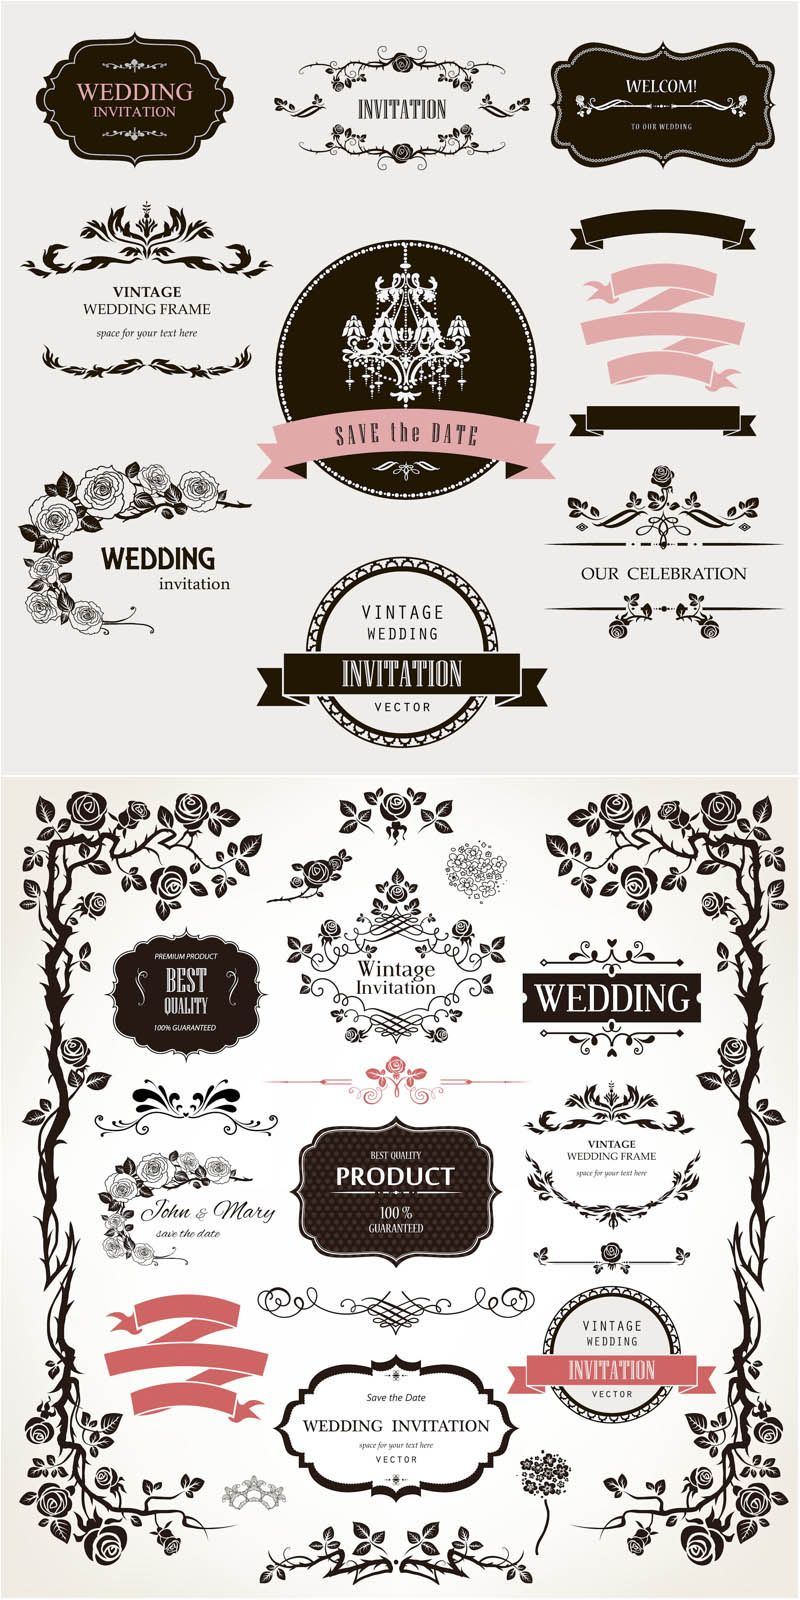 Decorative floral wedding design elements vector graphics vector decorative floral wedding design elements vector graphics vector graphics blog stopboris Choice Image